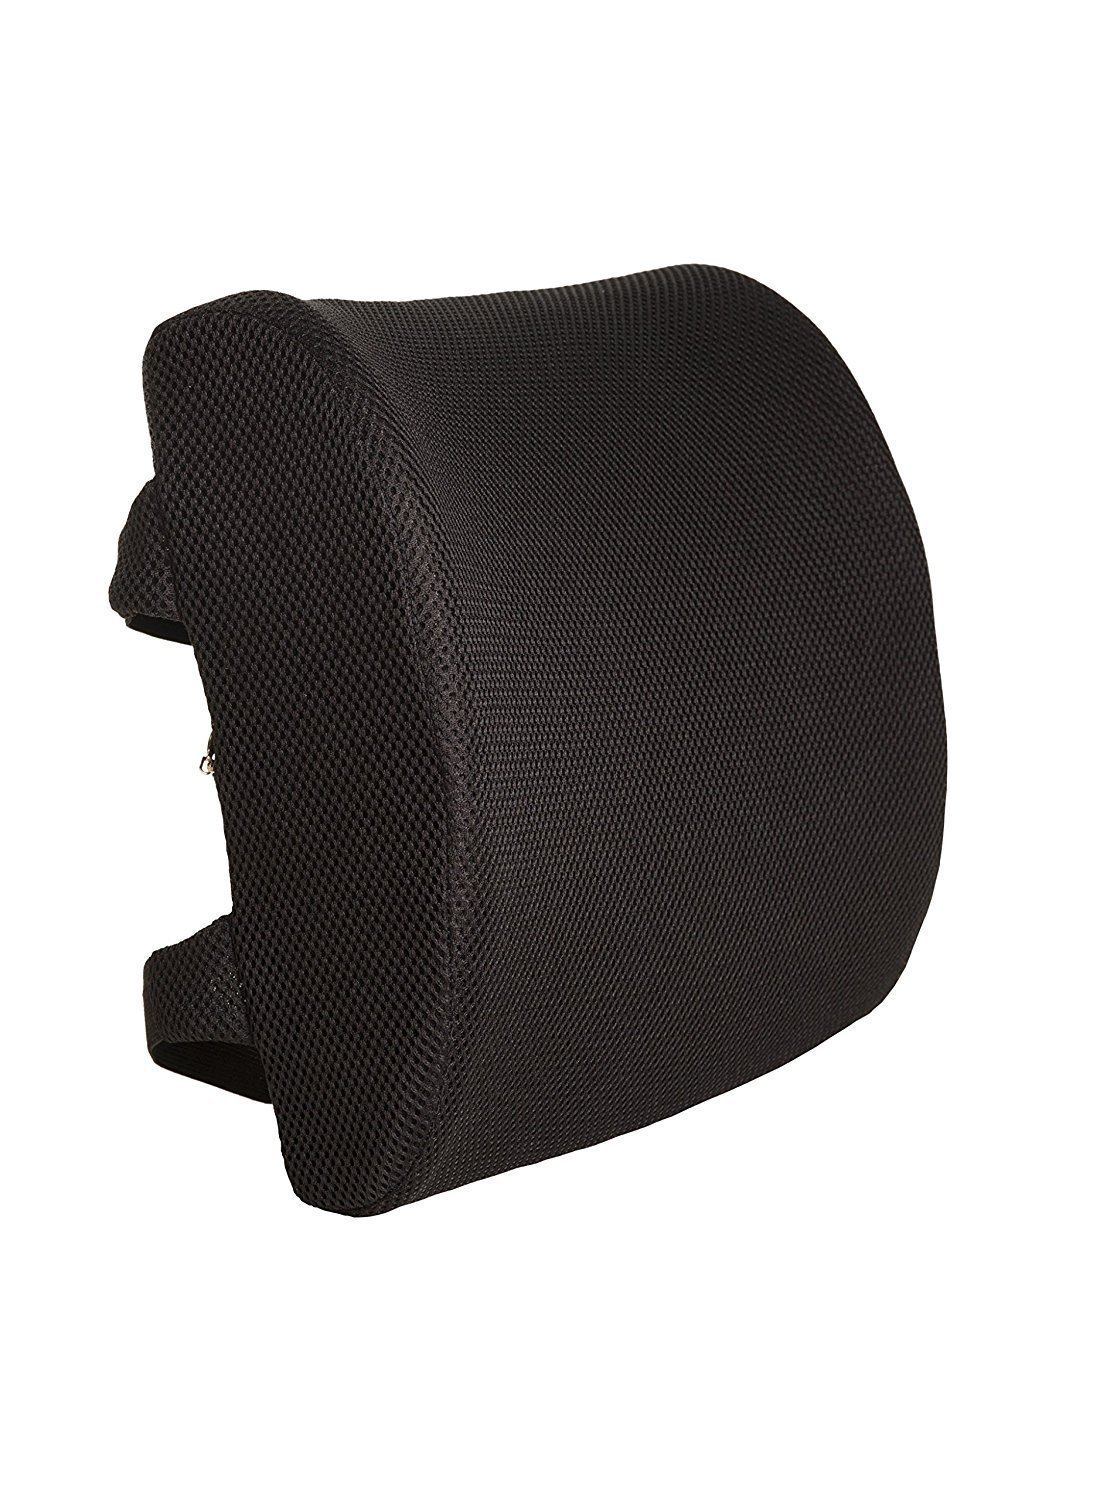 Lumbar Support Pillow For Chair 10 Best Lumbar Support Cushions That All Desk Workers Need